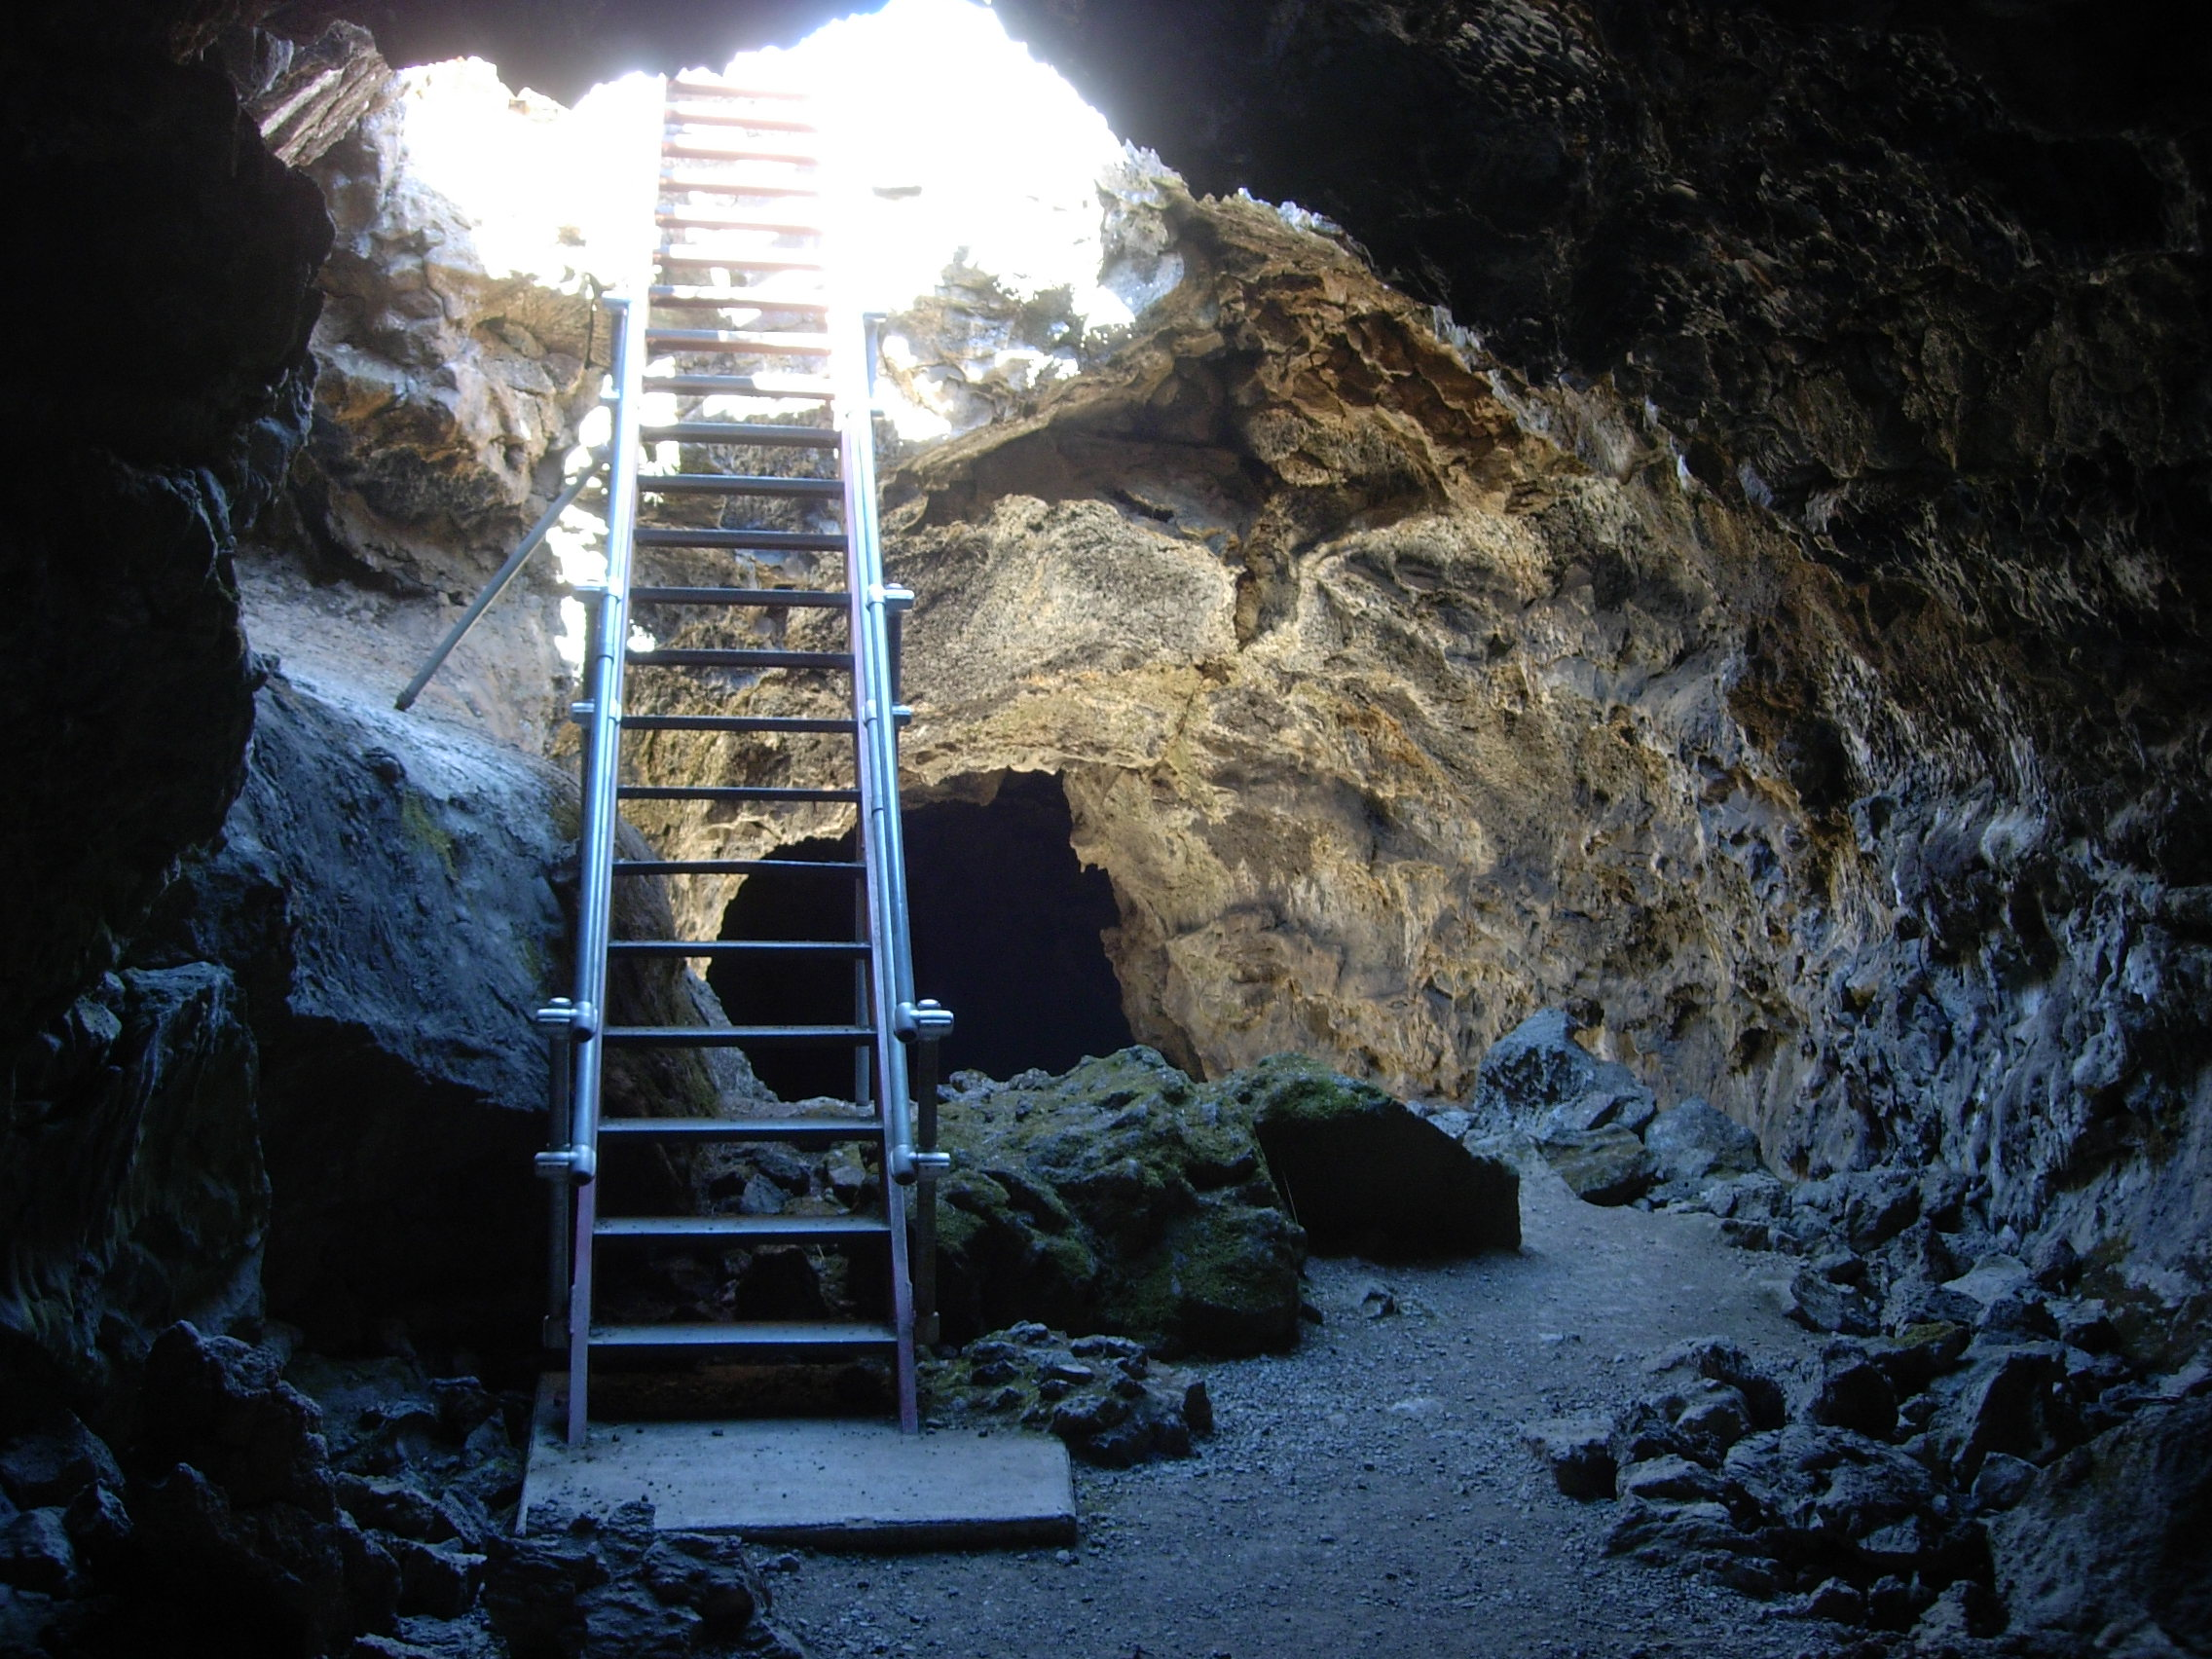 Entrance to Blue Grotto Cave. Blue Grotto is one of the caves that is open seasonally in the winter, but will be closed for the summer season beginning on April 25 (NPS Photo)